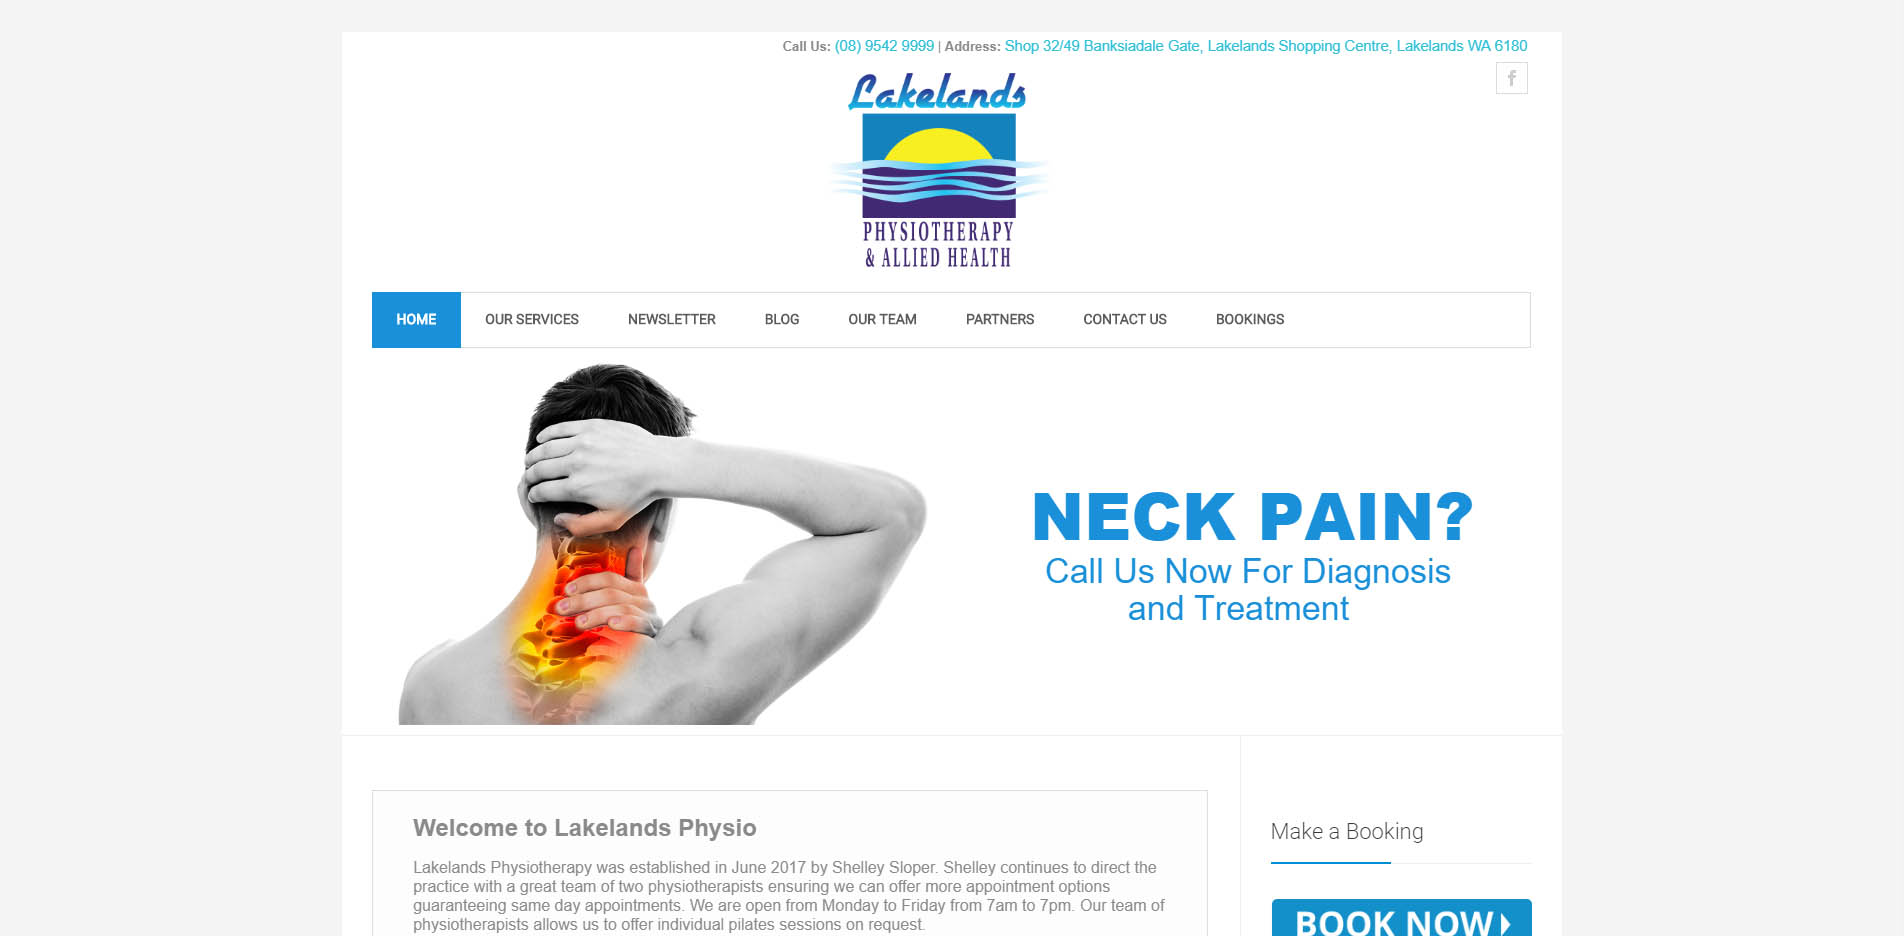 Lakelands Physiotherapy